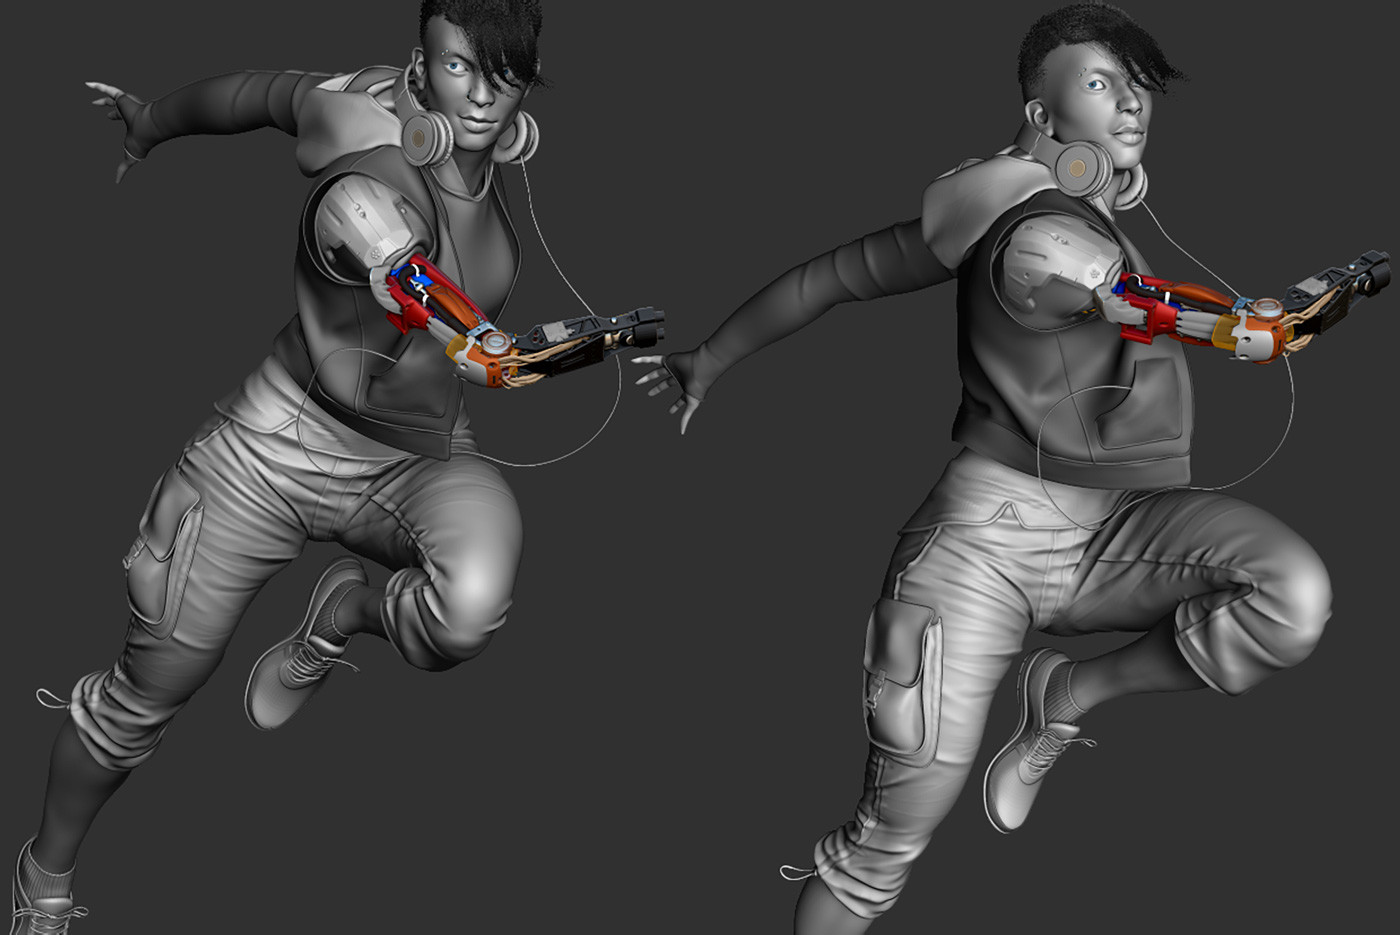 Working sculpt Zbrush